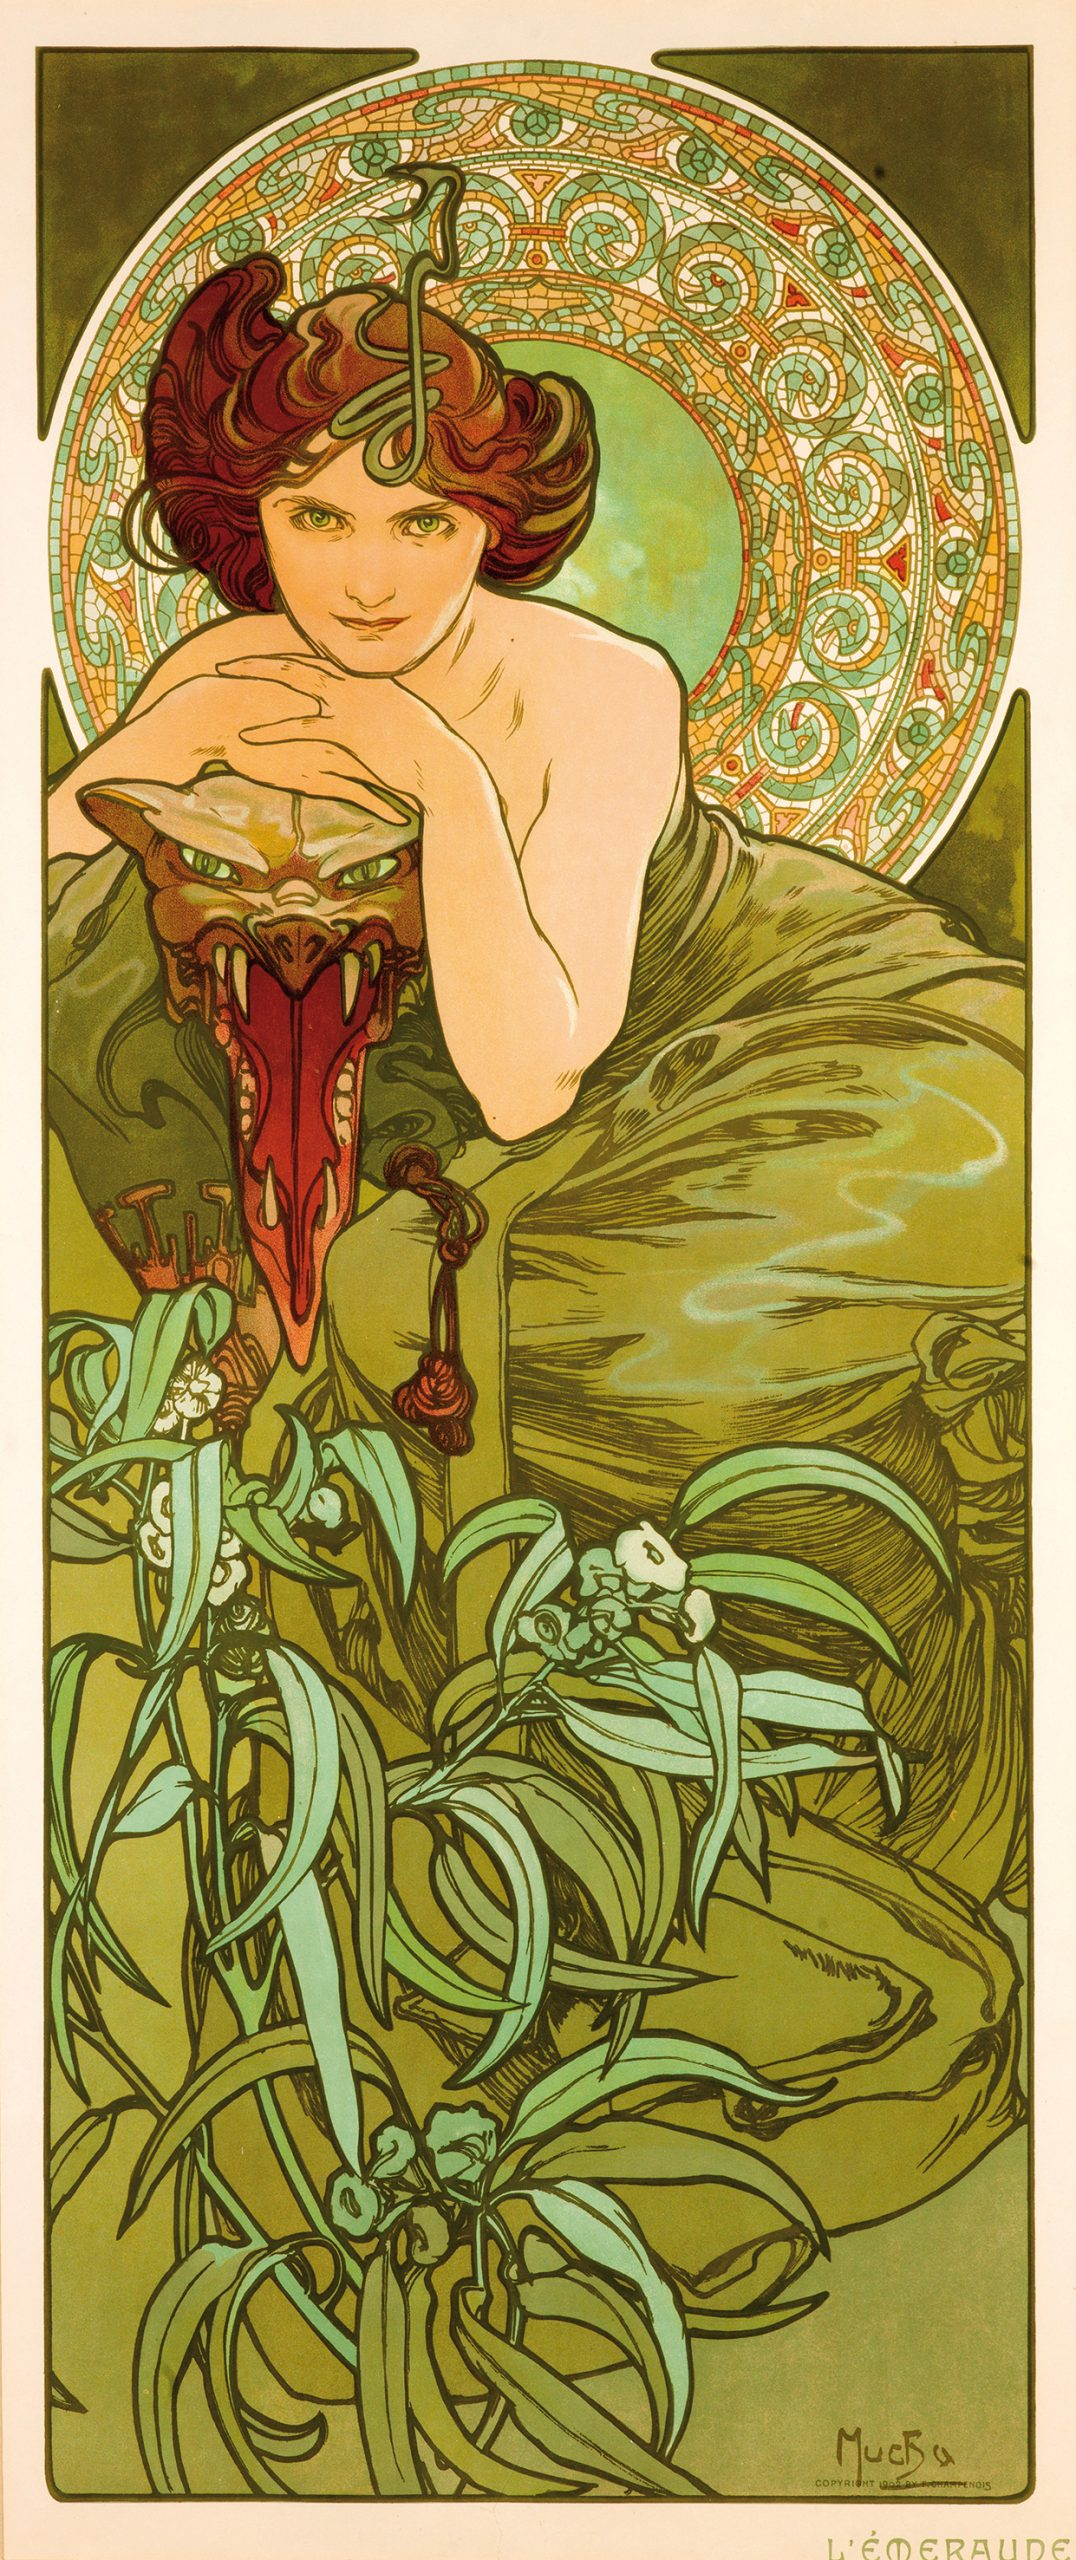 illustrational poster of a woman in a green dress resting her arms on a large snake head